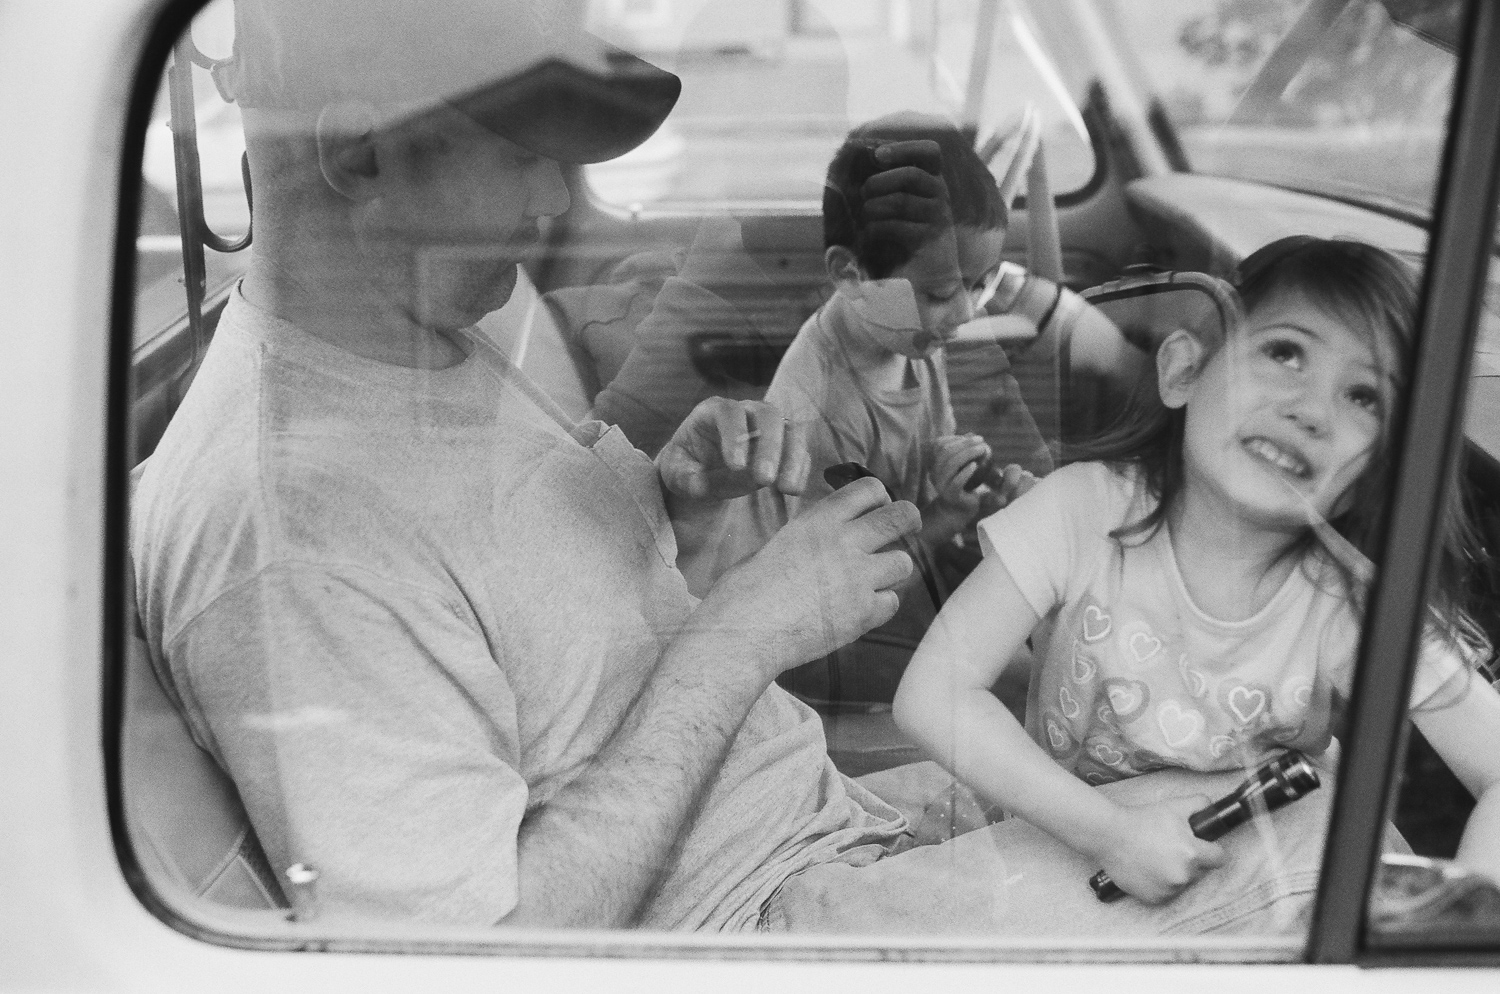 family playing inside the cab of a truck